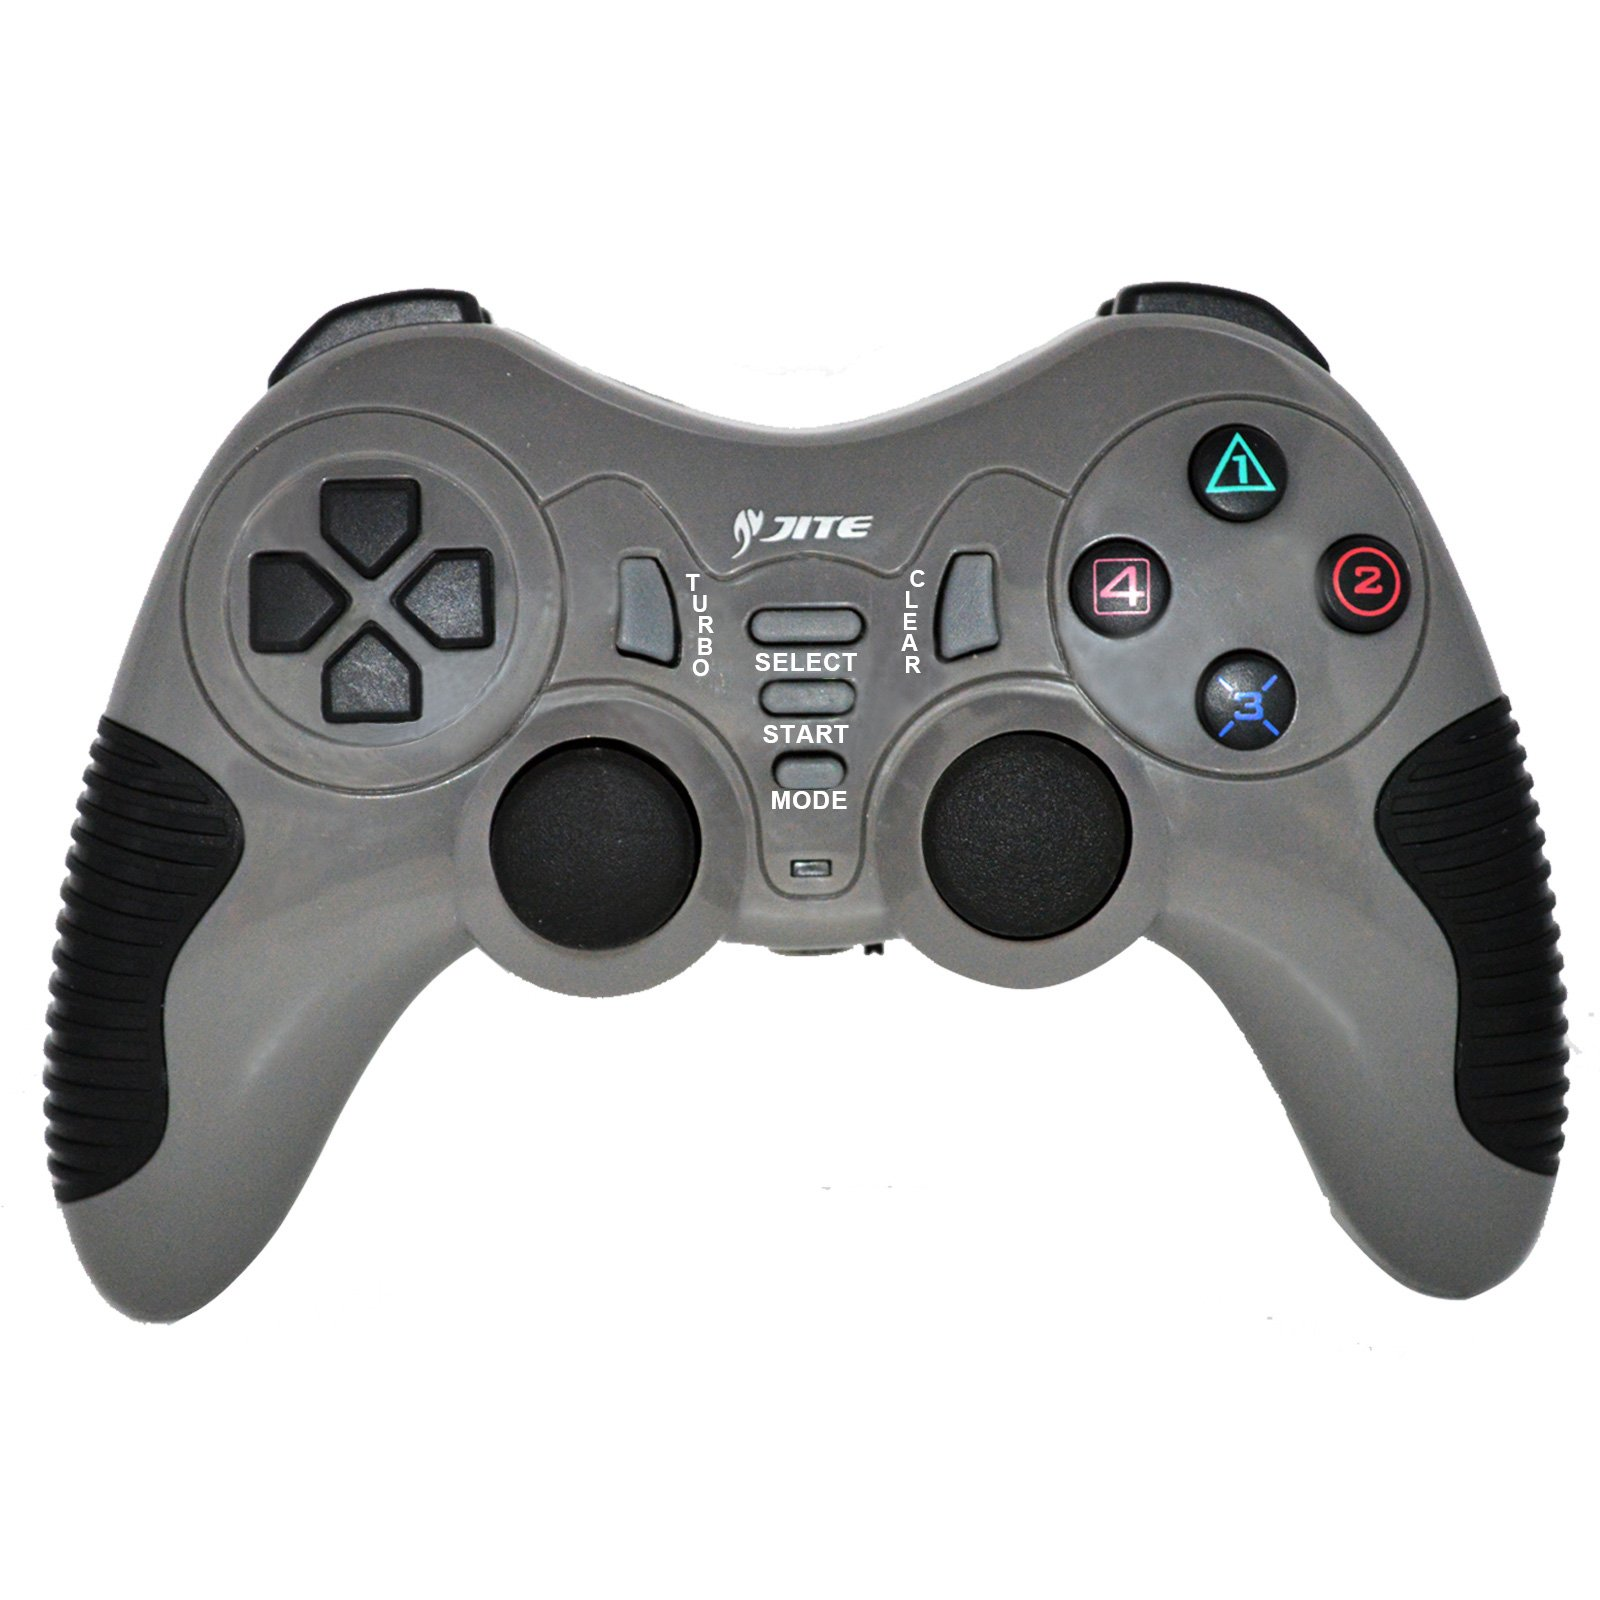 Wireless Pro Game Pad Joystick Remote Game Controller for PC Computer Laptop Notebook PS2 PS3 (Grey)